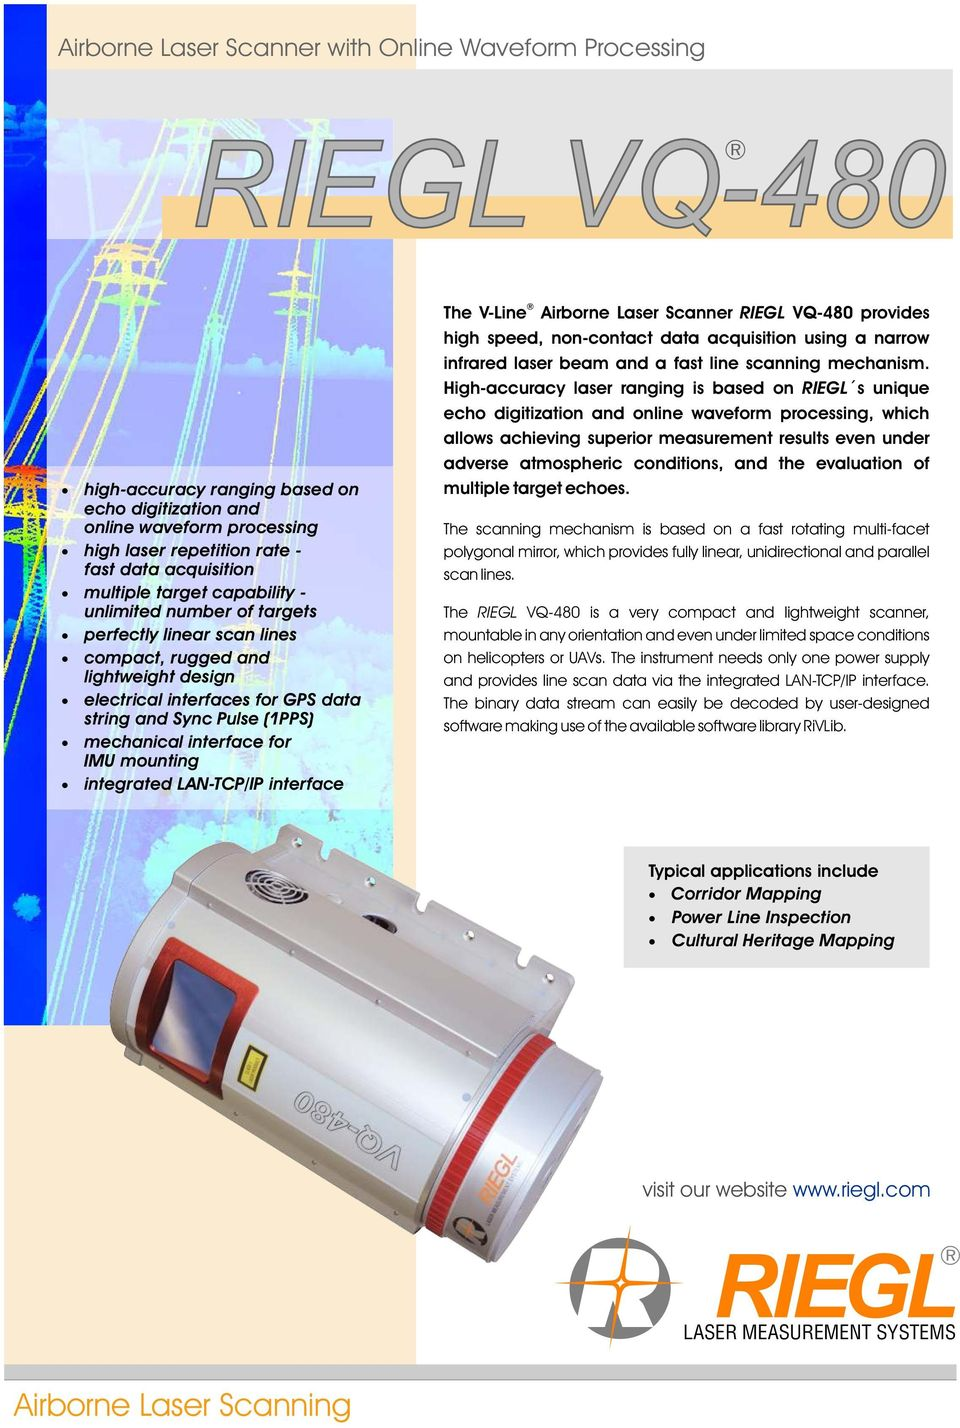 interface for IMU mounting integrated LAN-TCP/IP interface The V-Line Airborne Laser Scanner RIEGL VQ-48 provides high speed, non-contact data acquisition using a narrow infrared laser beam and a